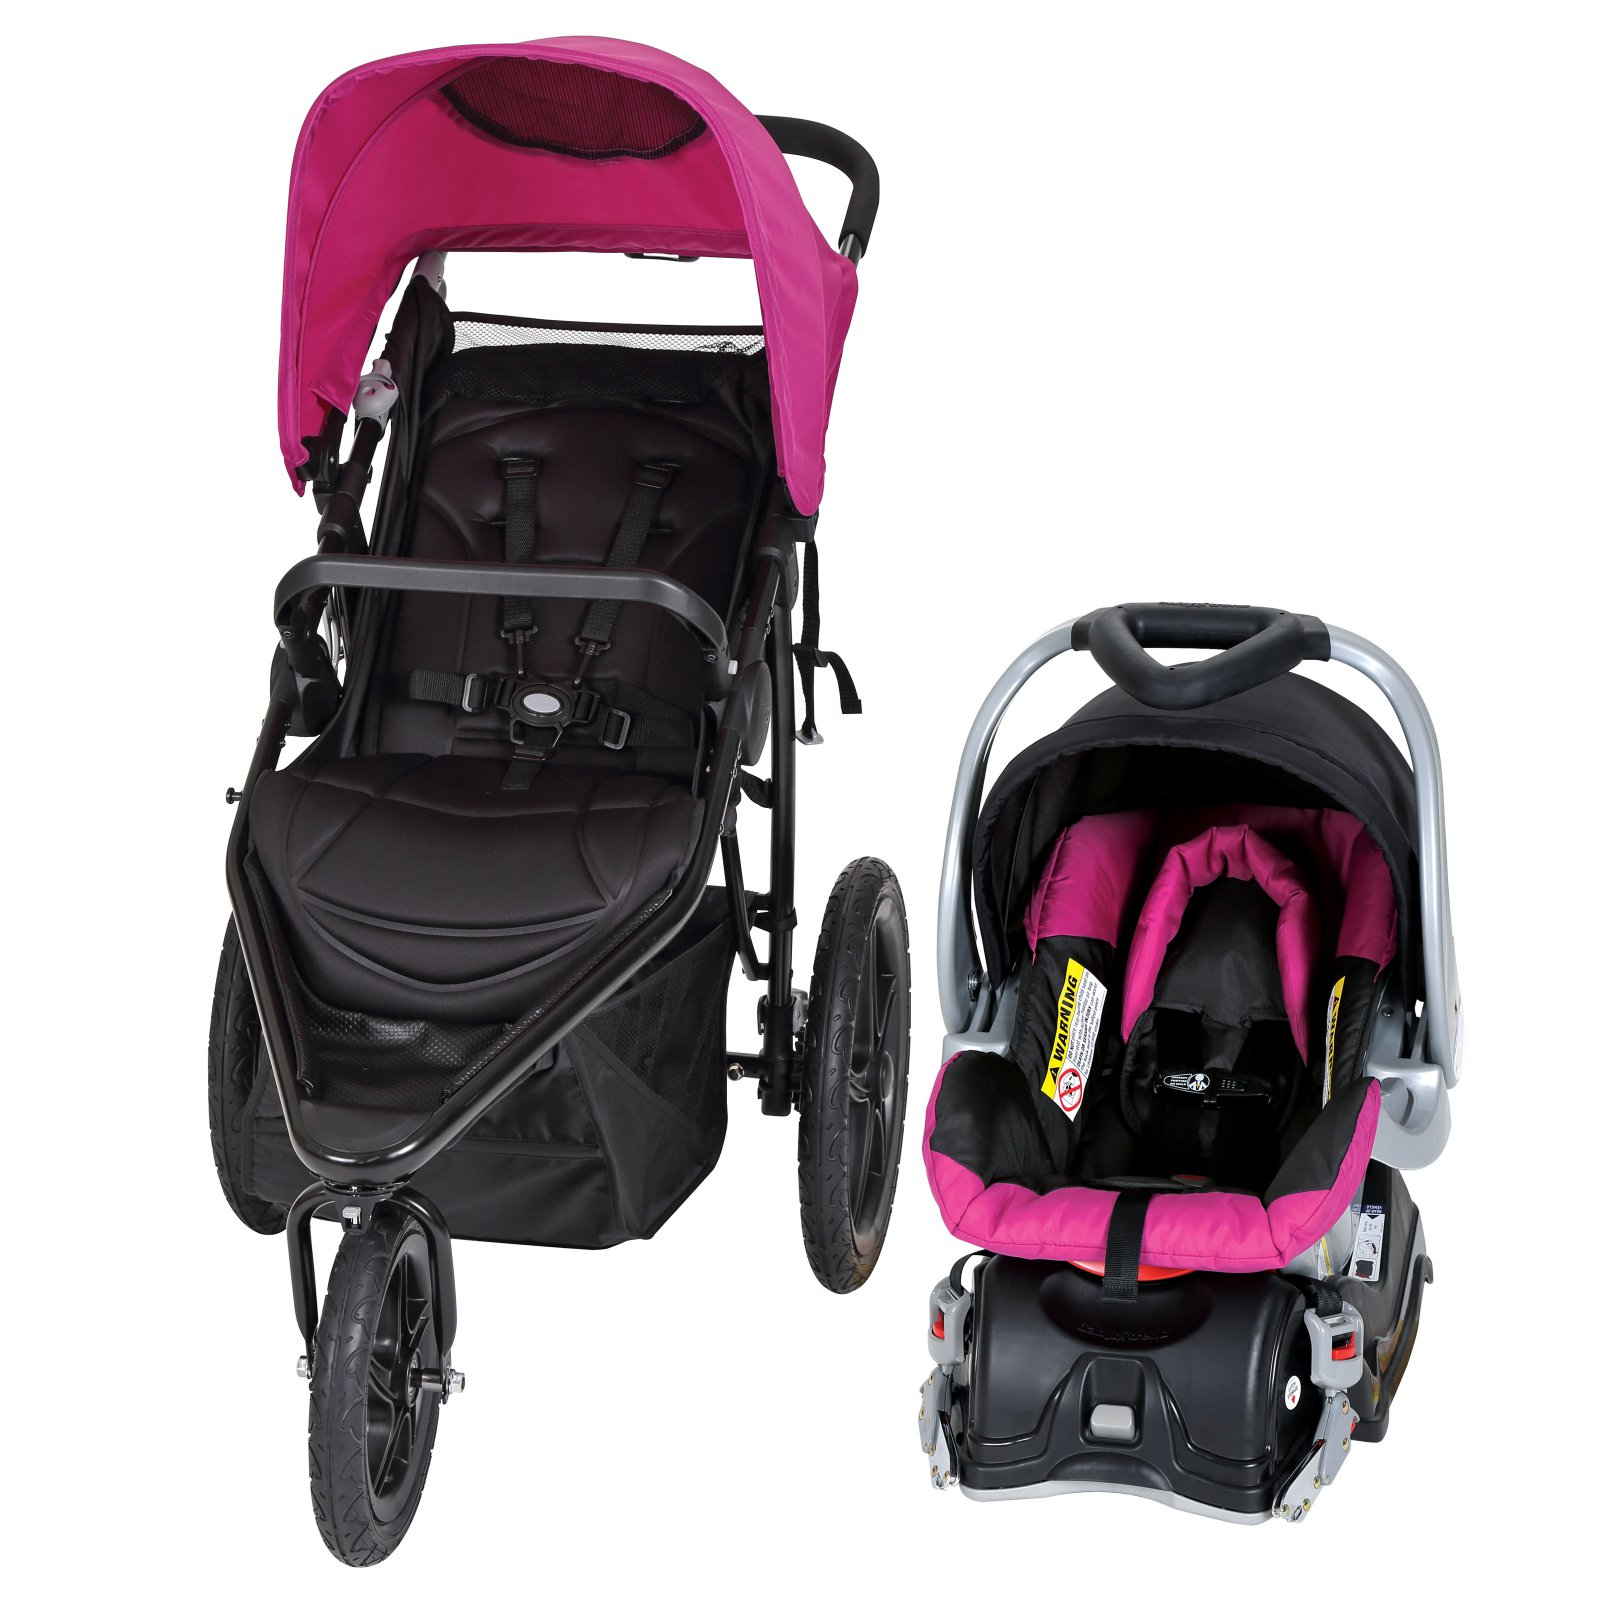 Baby Trend Stealth Jogger Travel System, Viola by Baby Trend